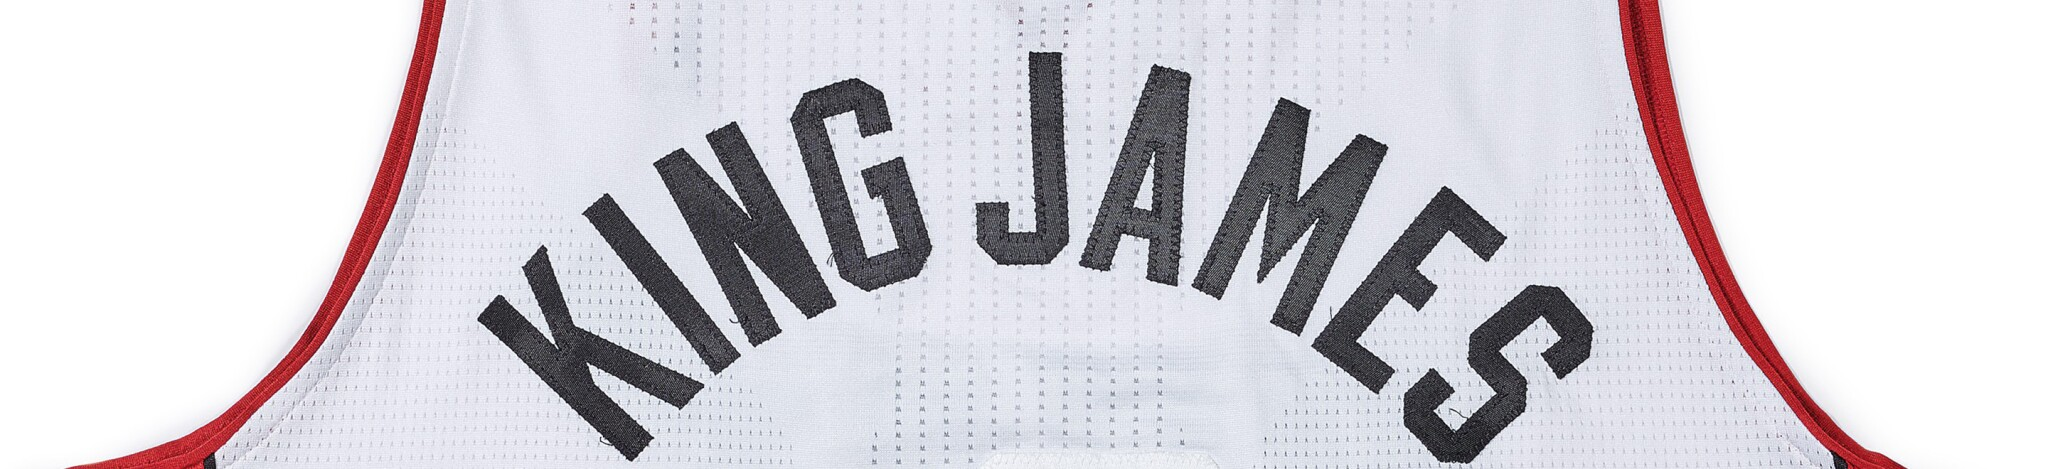 "From The Archive | Day 1 | LeBron James Game Worn ""King James"" Jersey"